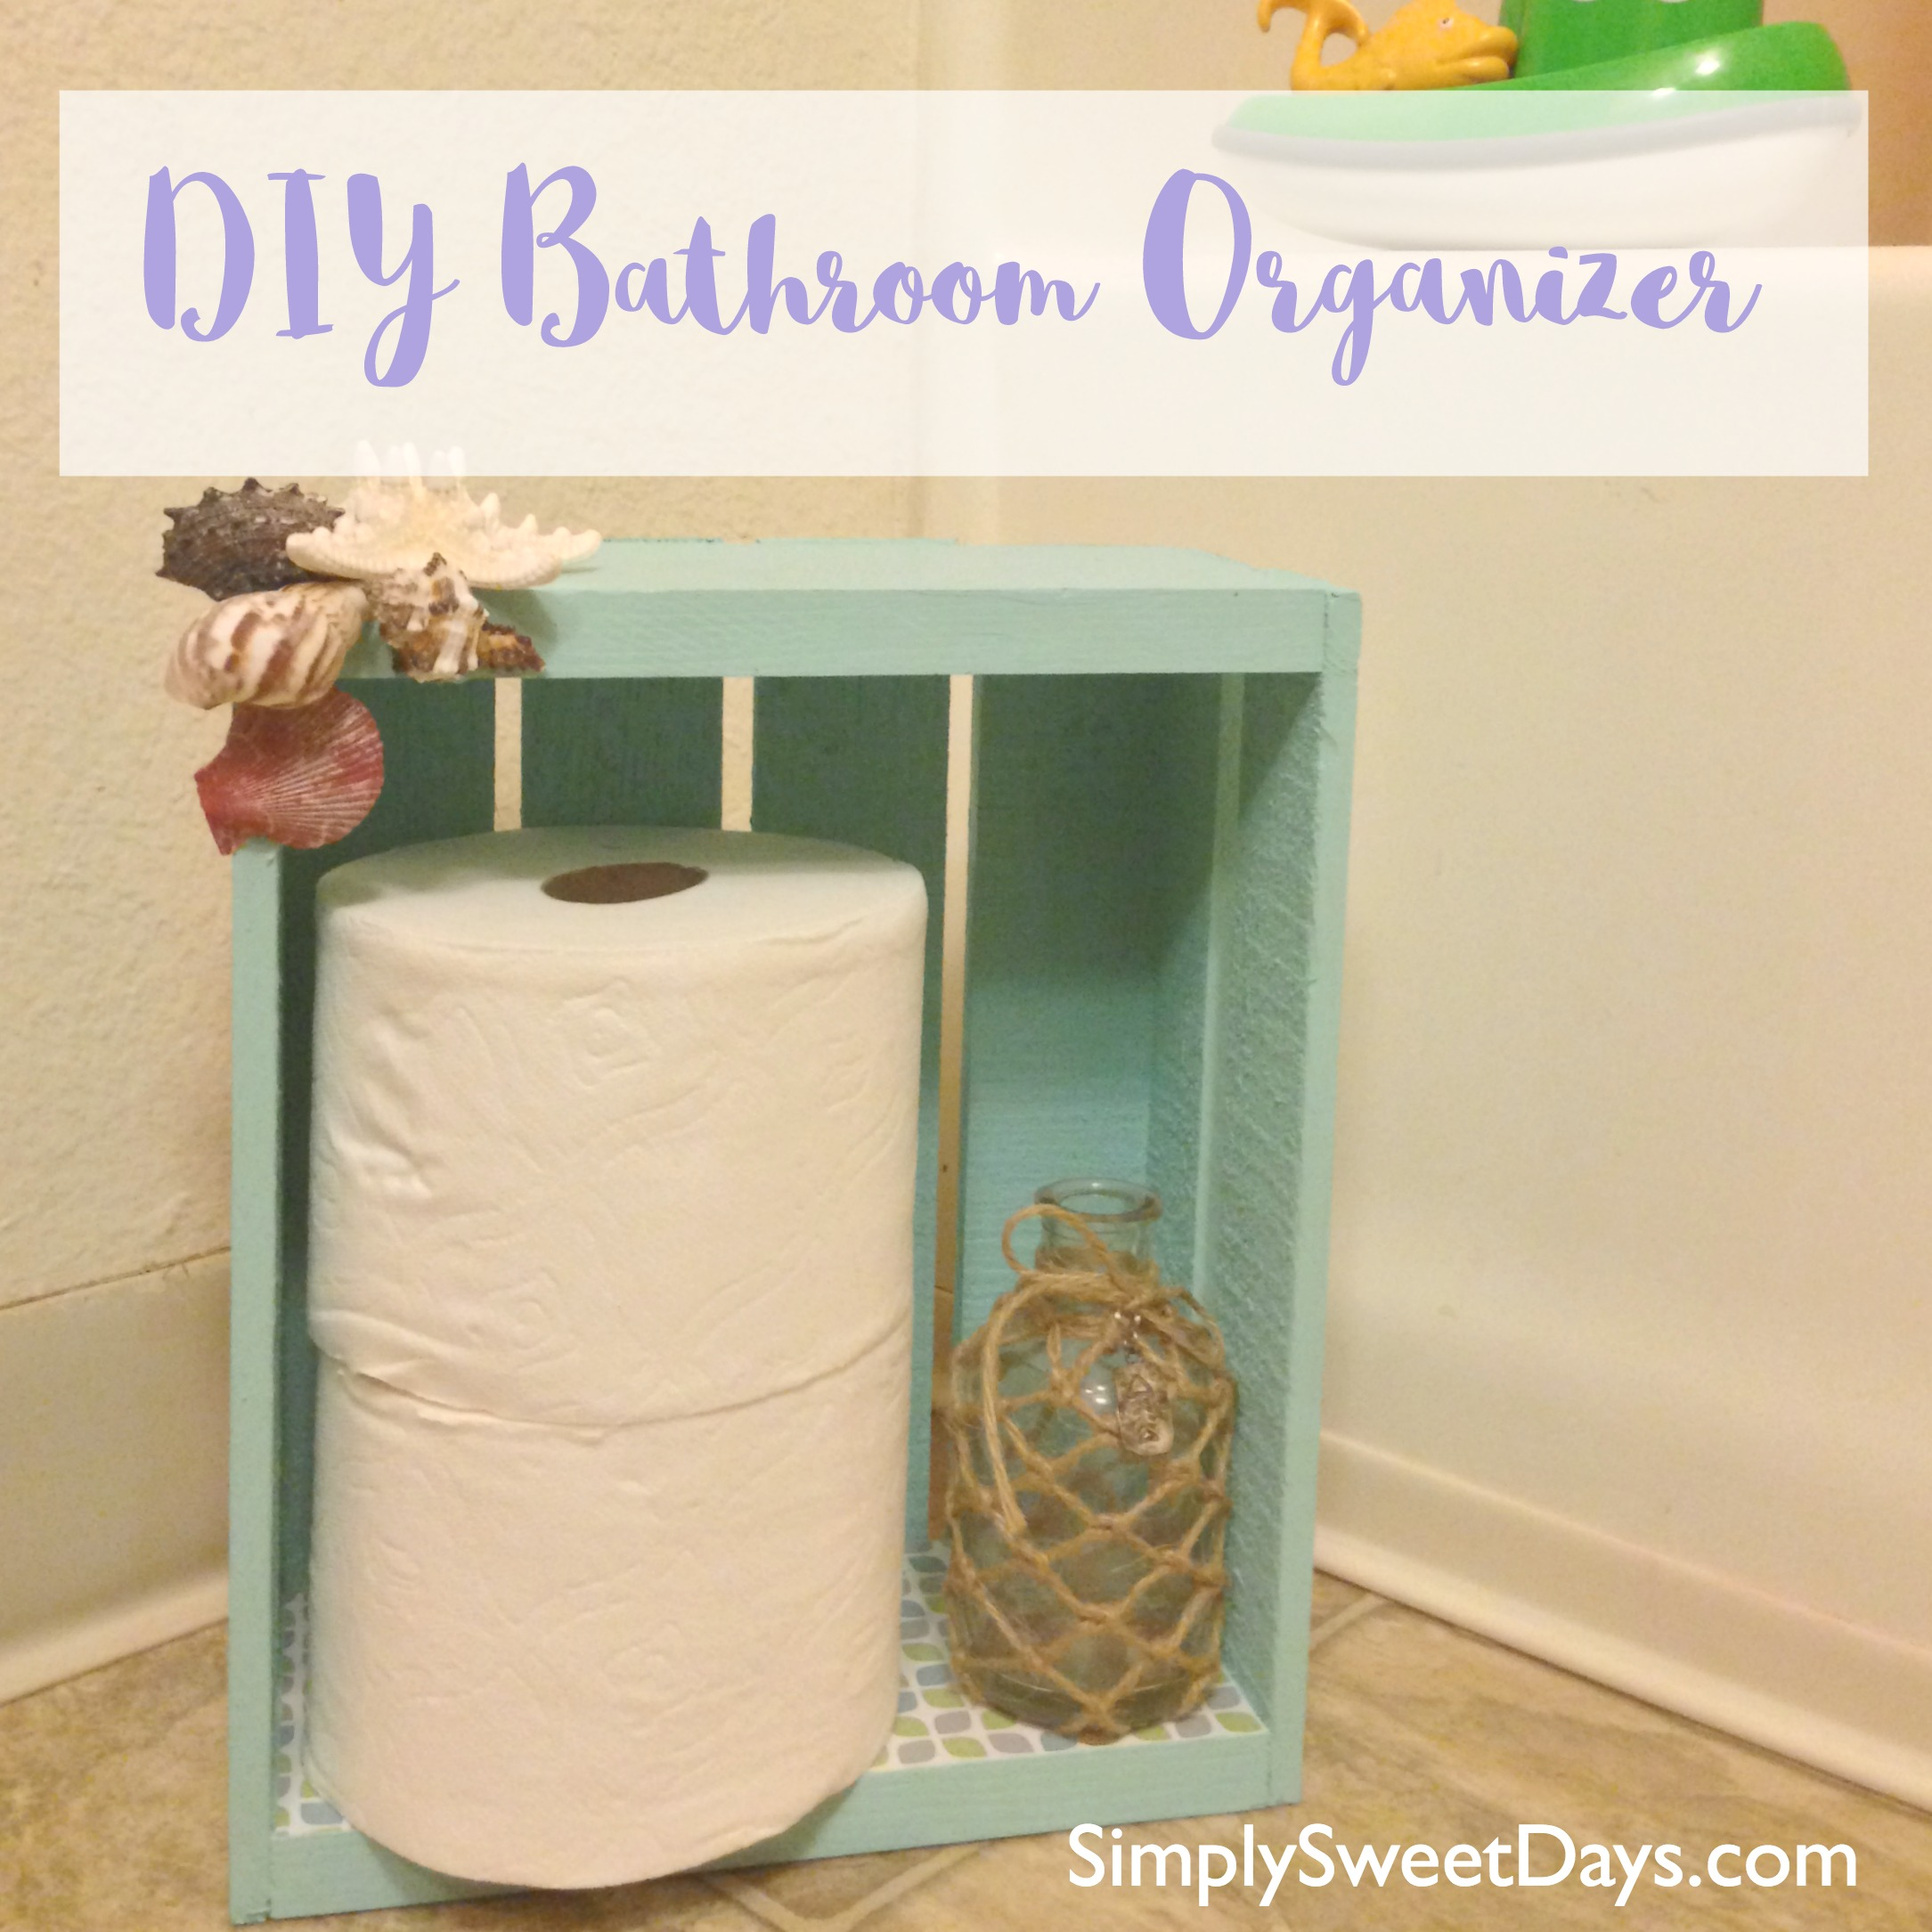 Covered Toilet Paper Storage Diy Bathroom Organizer And Toilet Paper Holder Simply Sweet Days